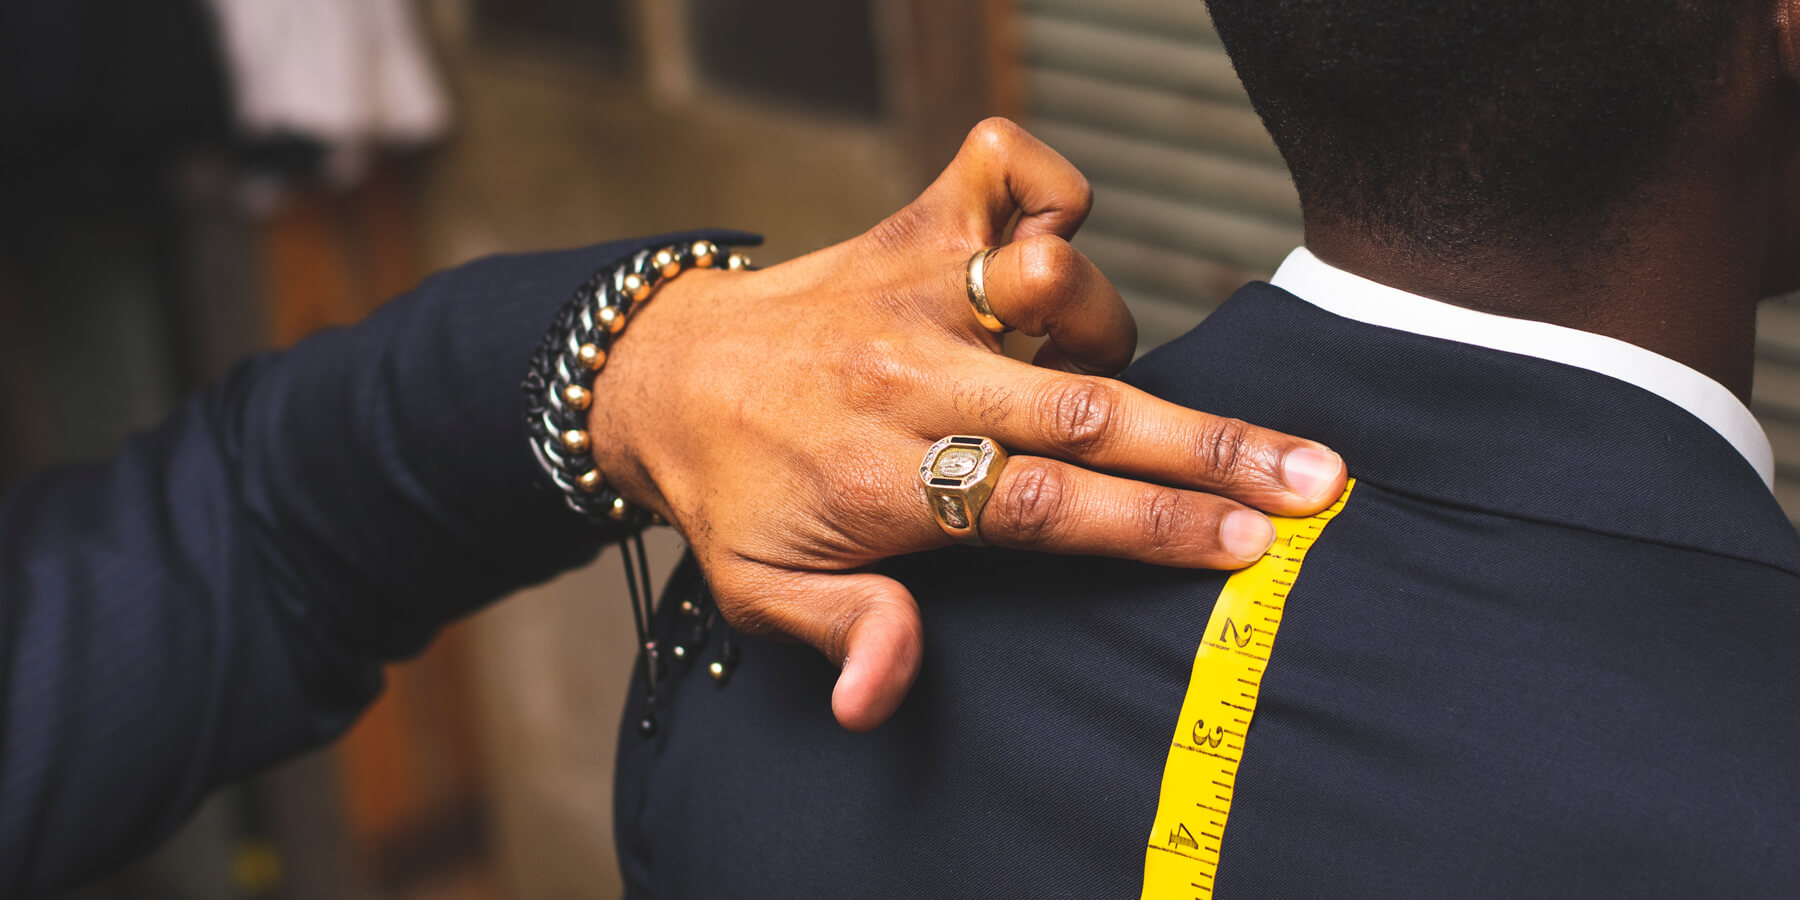 4 Essential Considerations When Looking for the Perfect Tailor